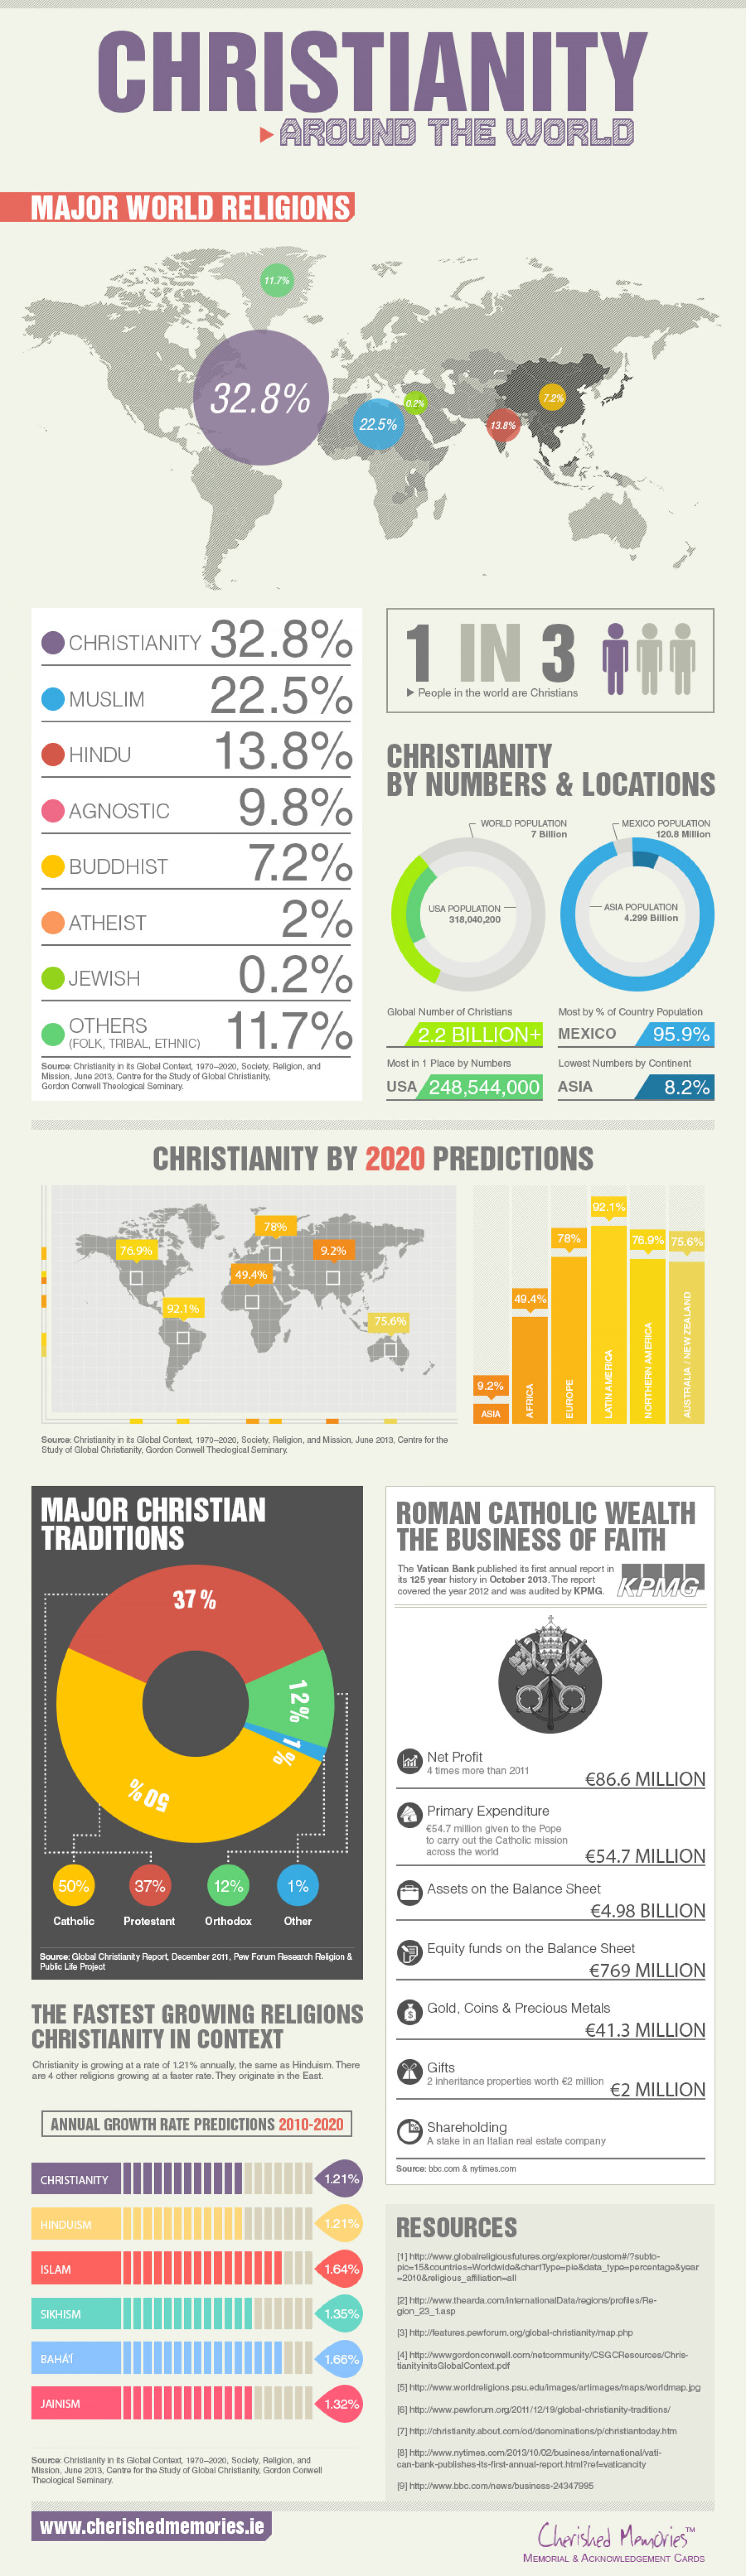 Christianity Around the World Infographic